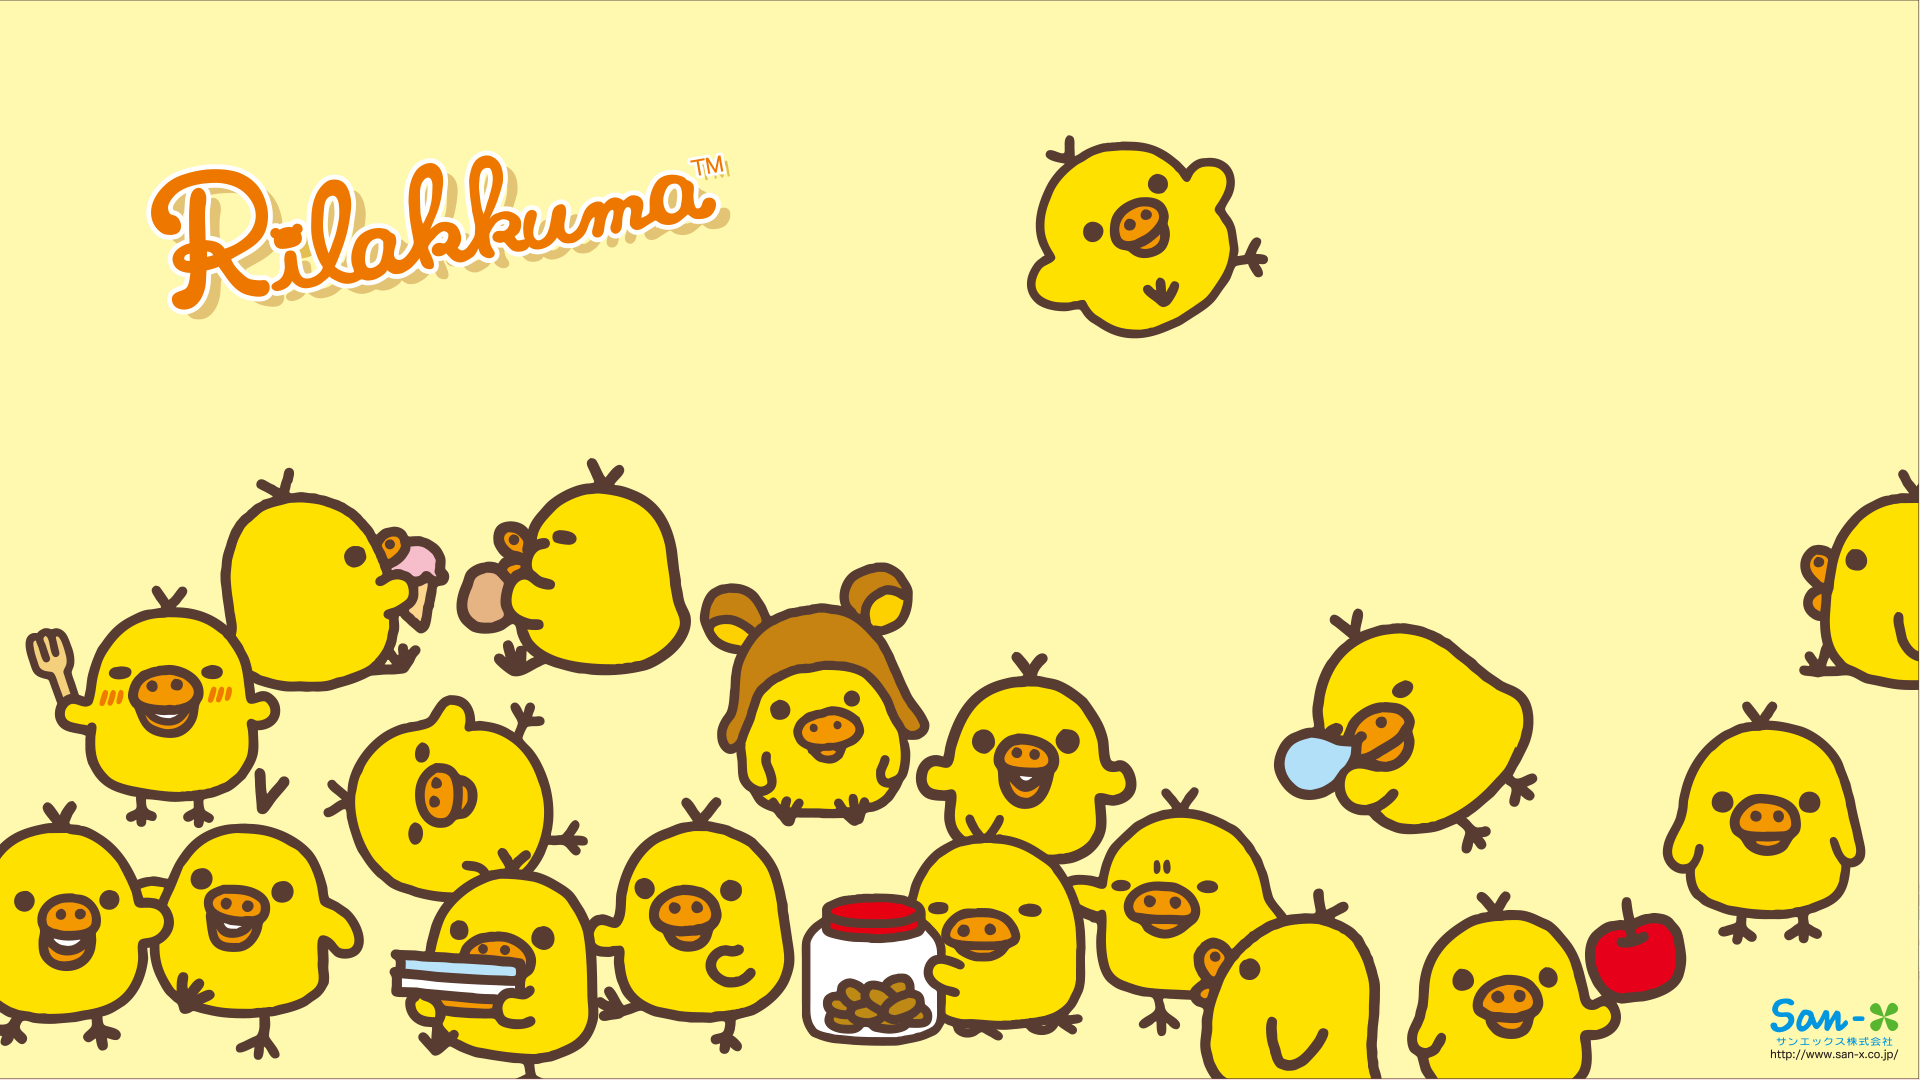 Wallpaper iphone san x - Rilakkuma Wallpaper 13